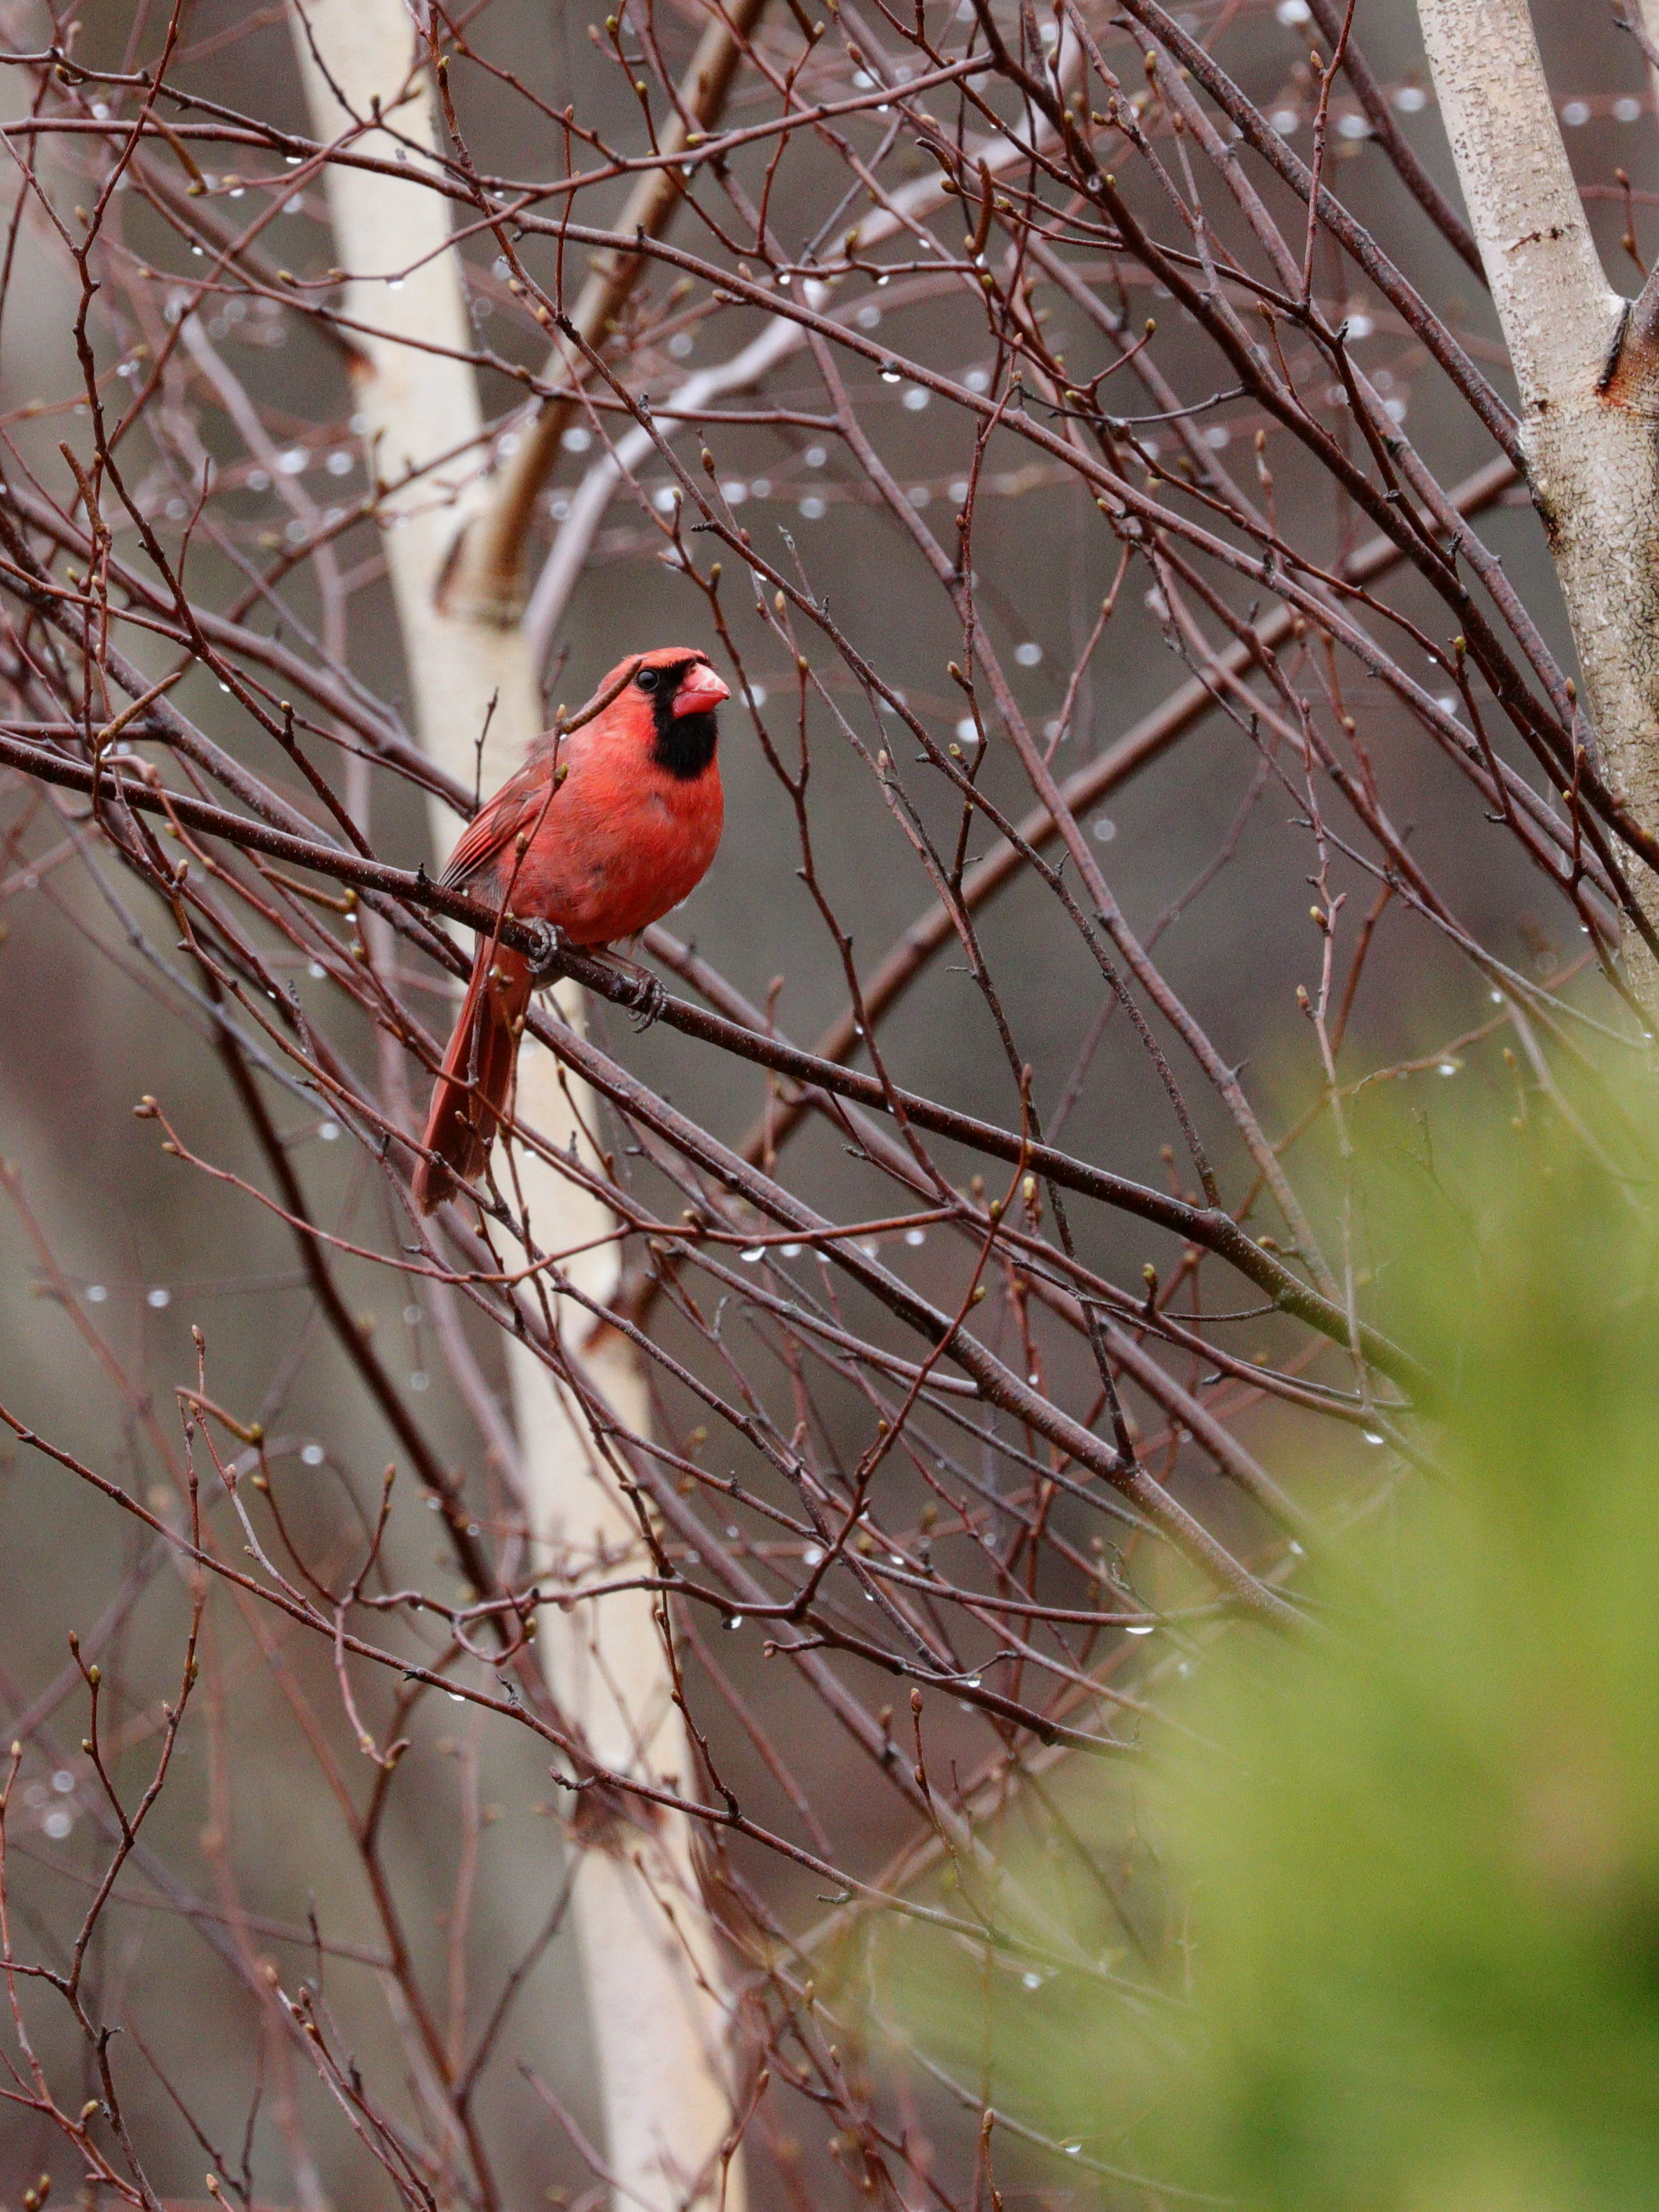 April 26, 2018 | Cardinal | Photo By: Cyndi Jackson